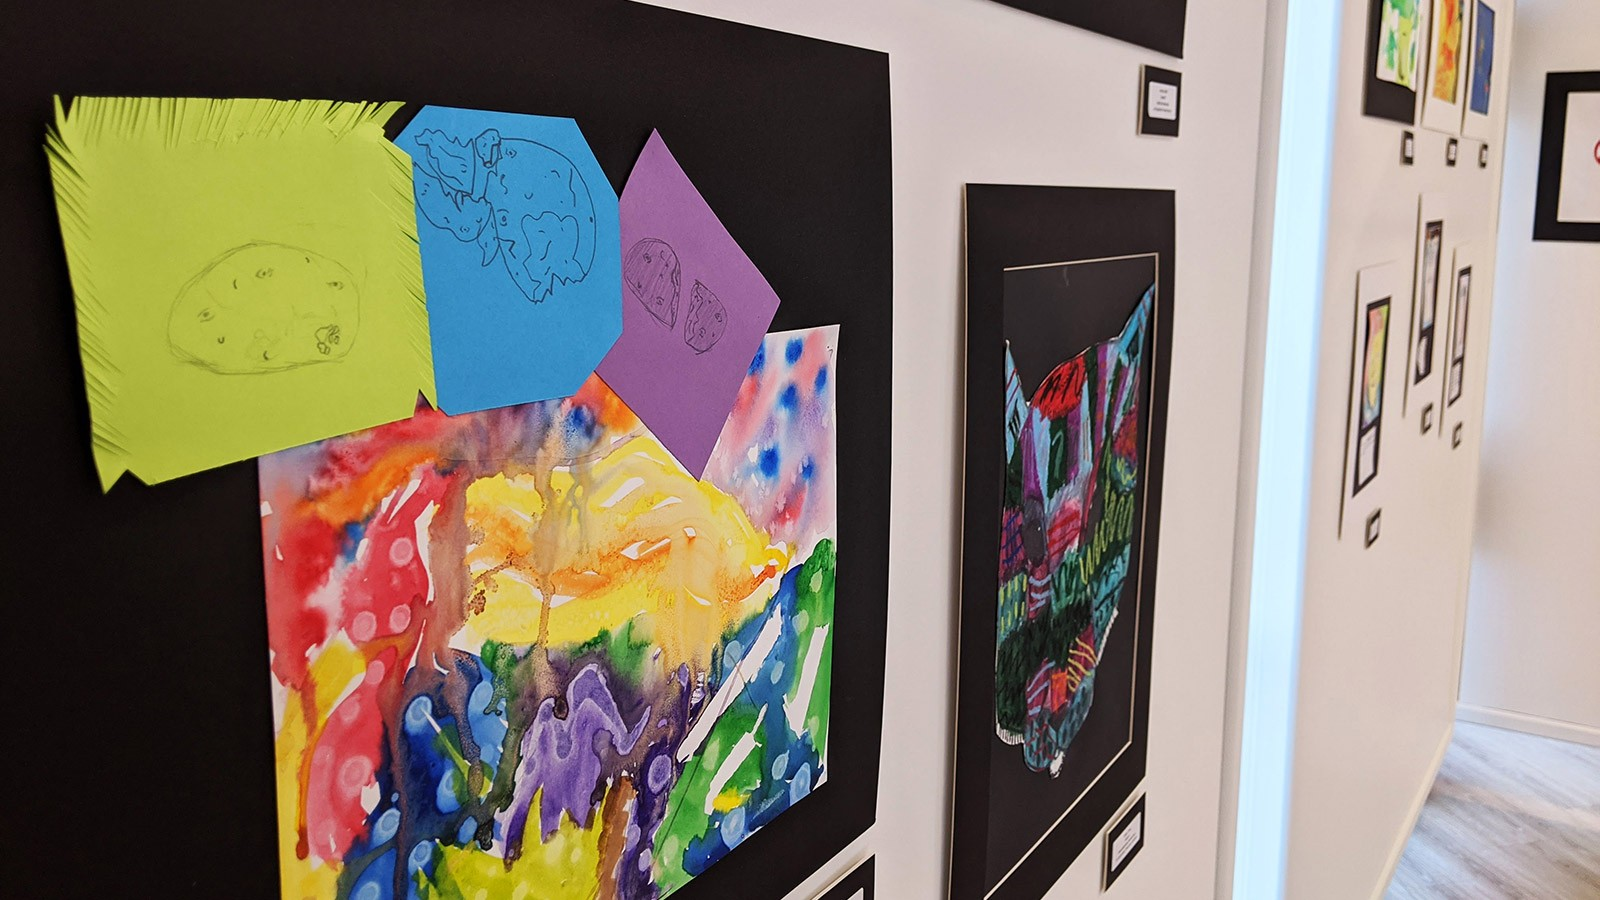 Student art on display at the Lyndsley Wilkerson Gallery.